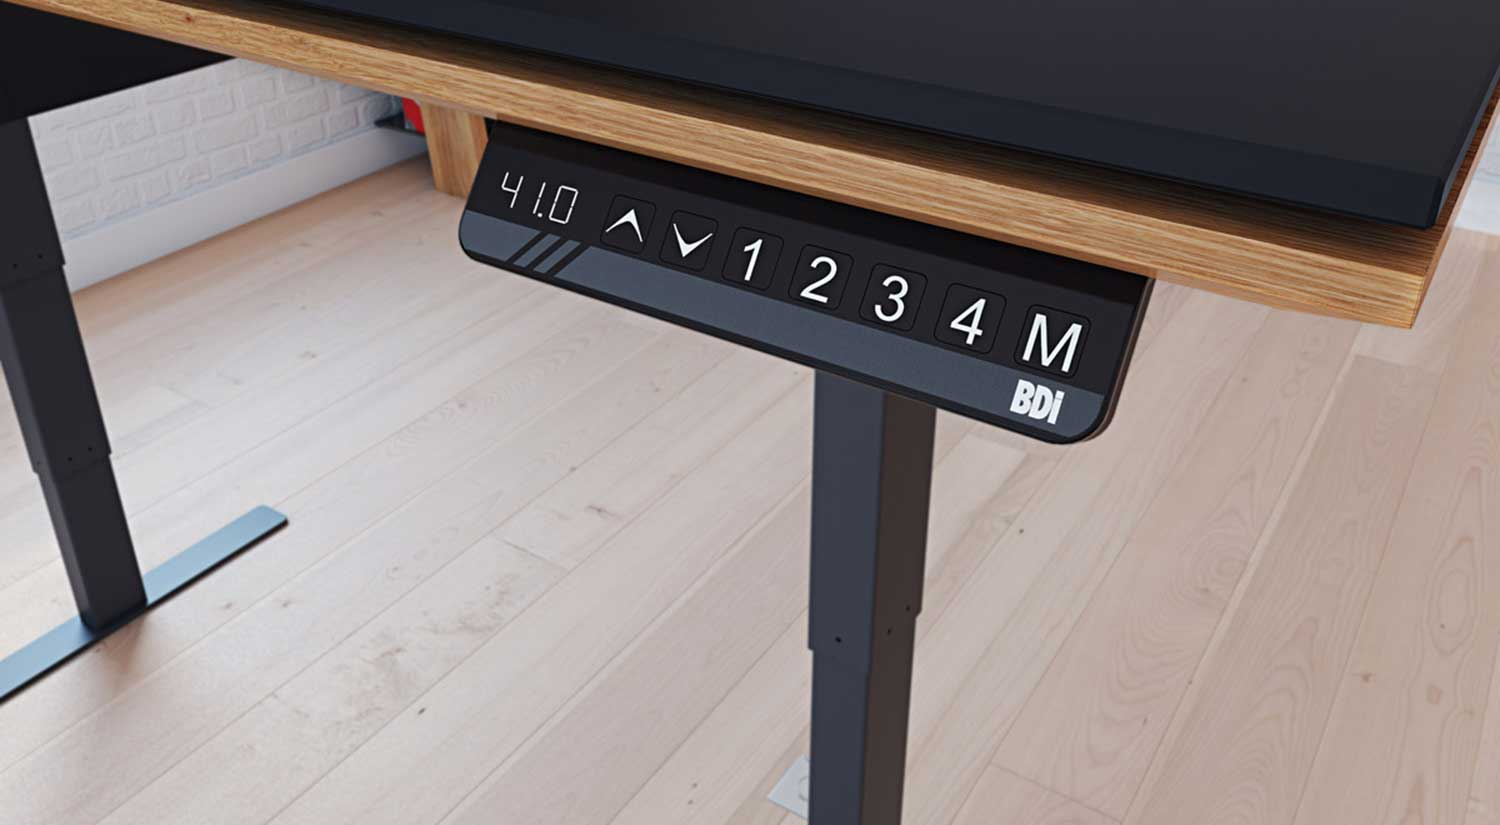 Sequel Large Lift Desk